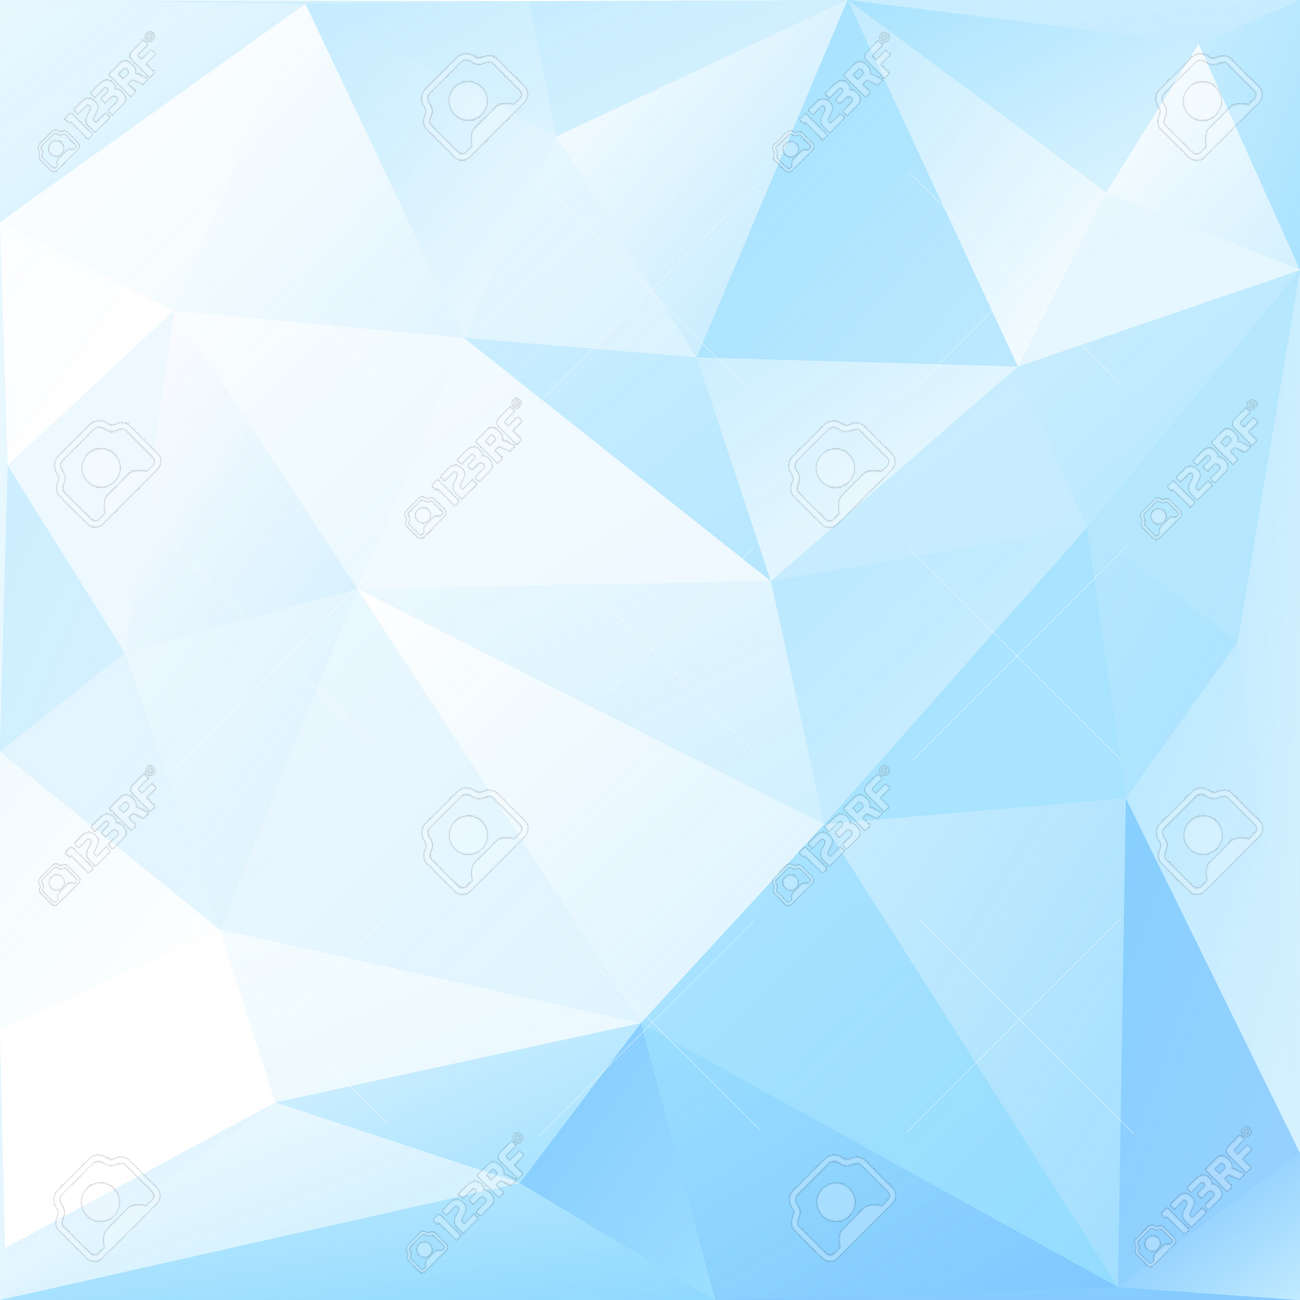 Abstract Low Poly Background Of Triangles In Light Blue Colors